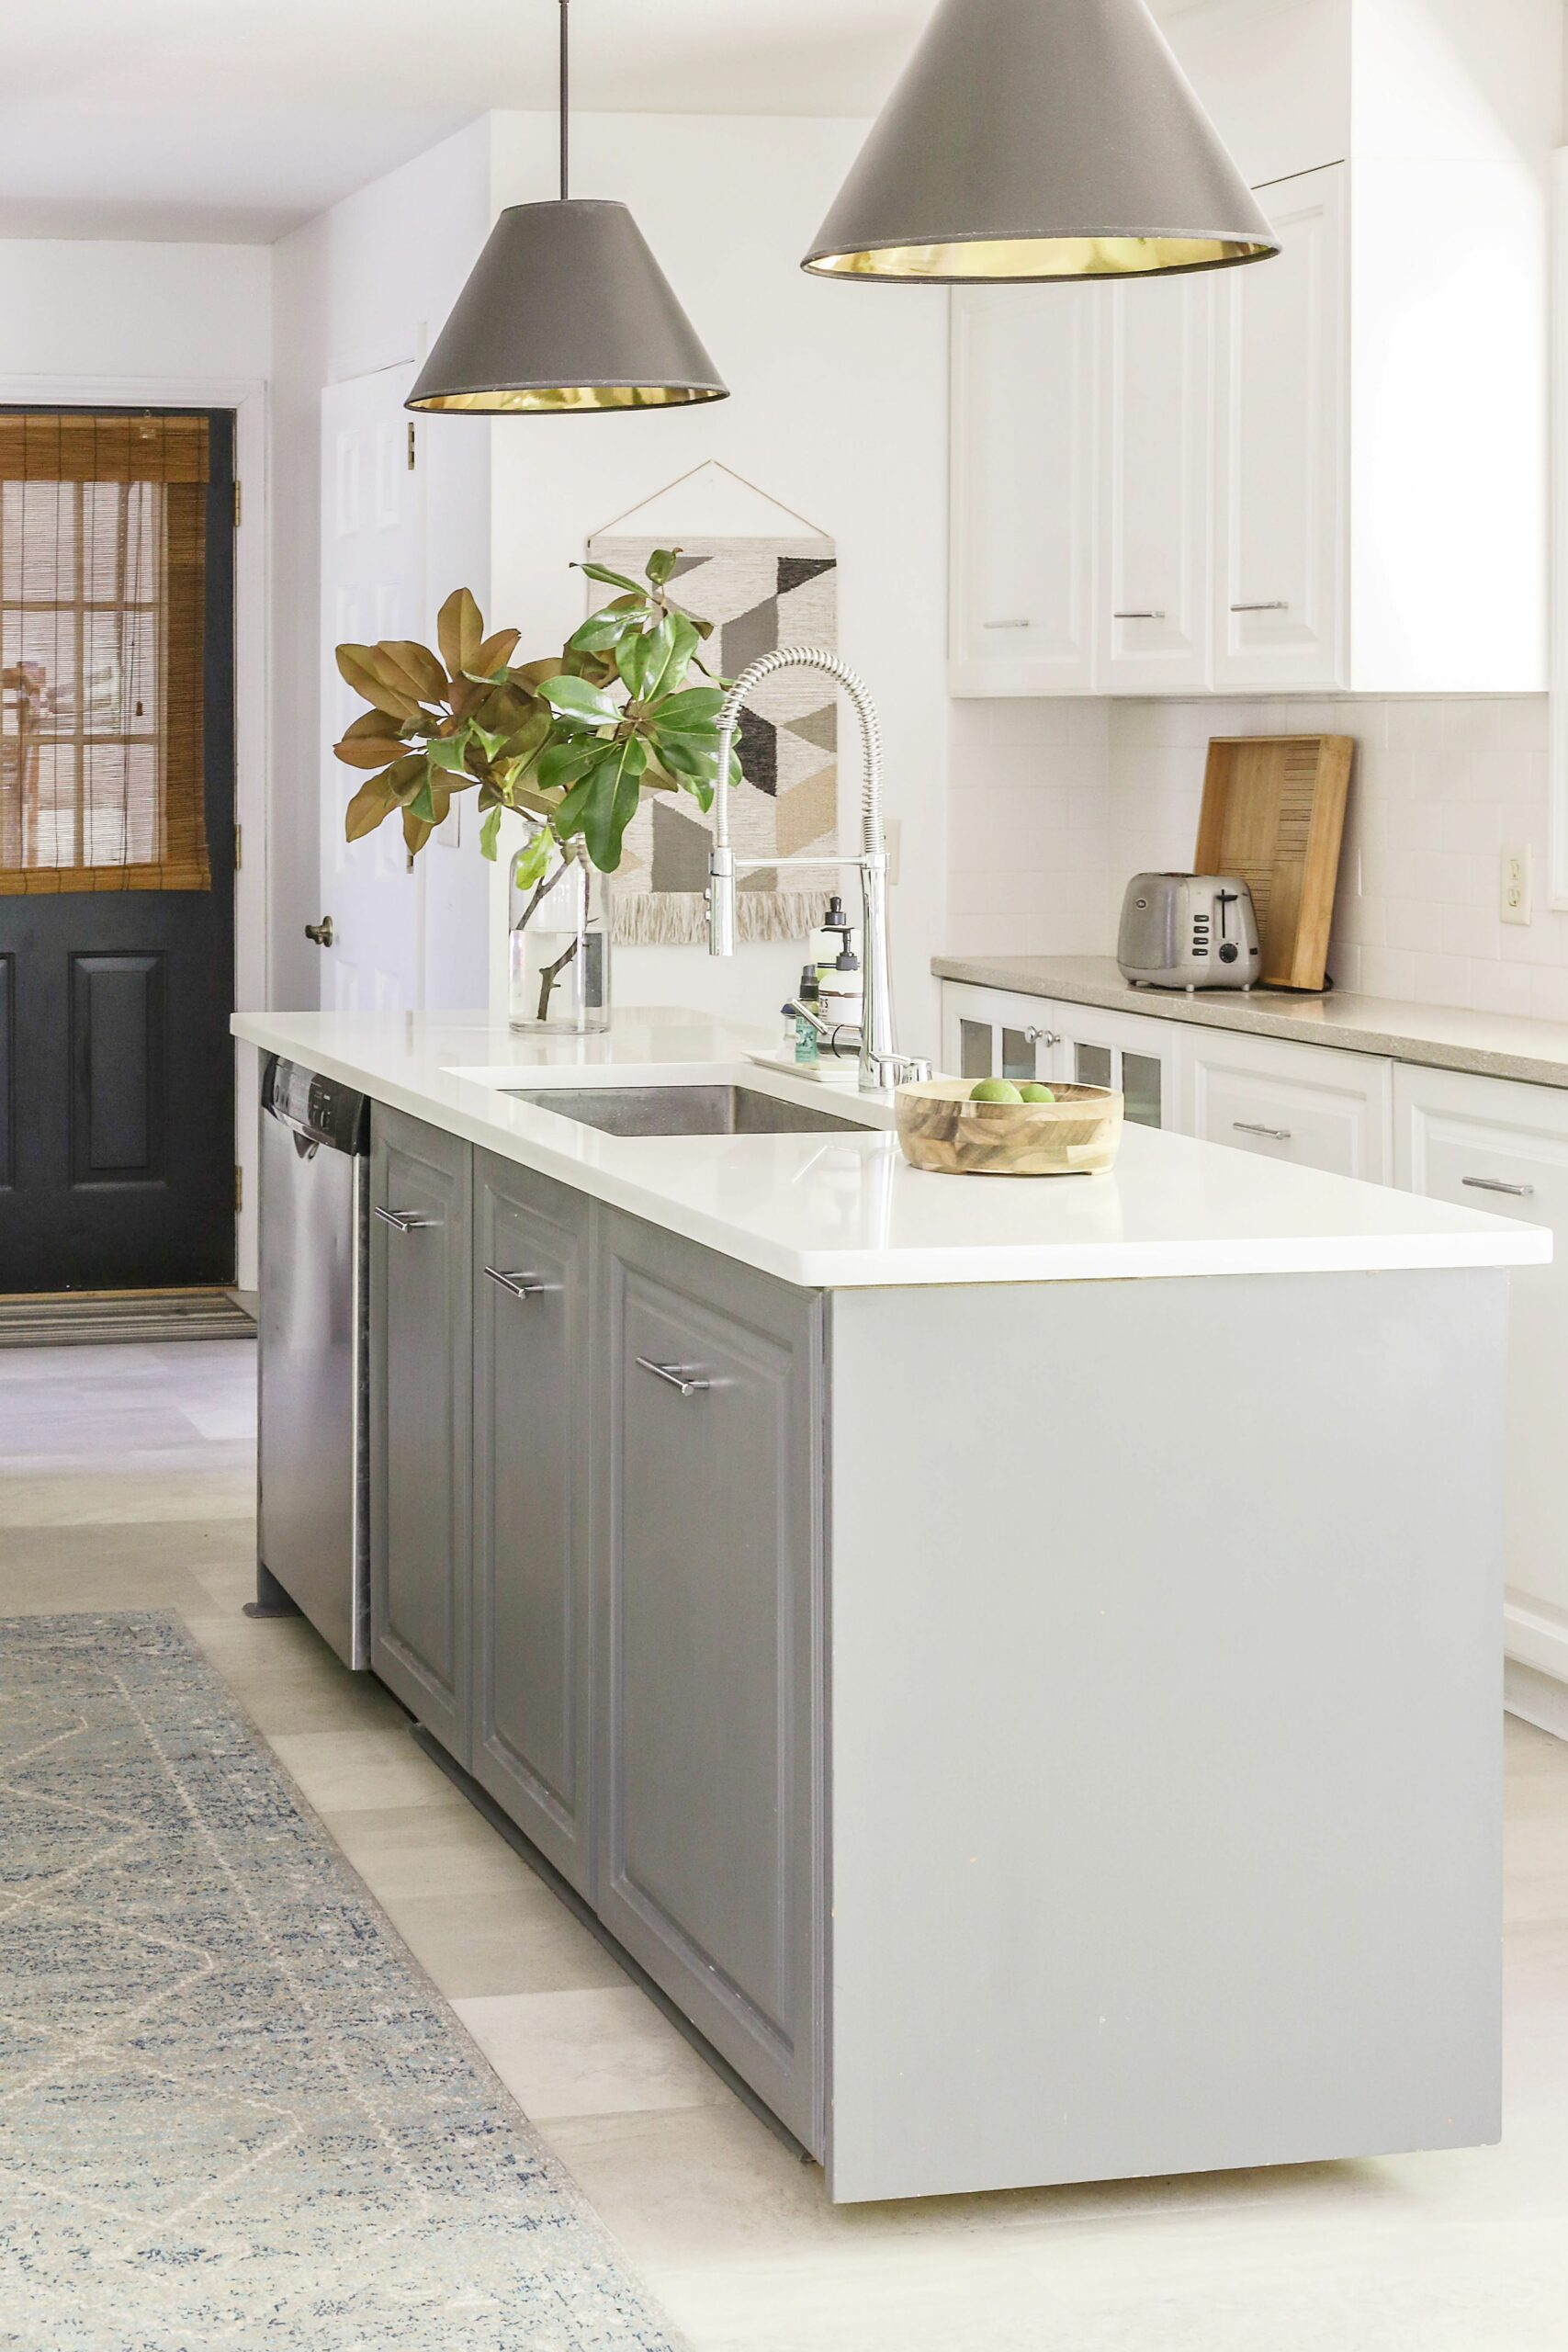 Beginner's Guide: DIY Kitchen Remodel on a Budget - Designing Vibes